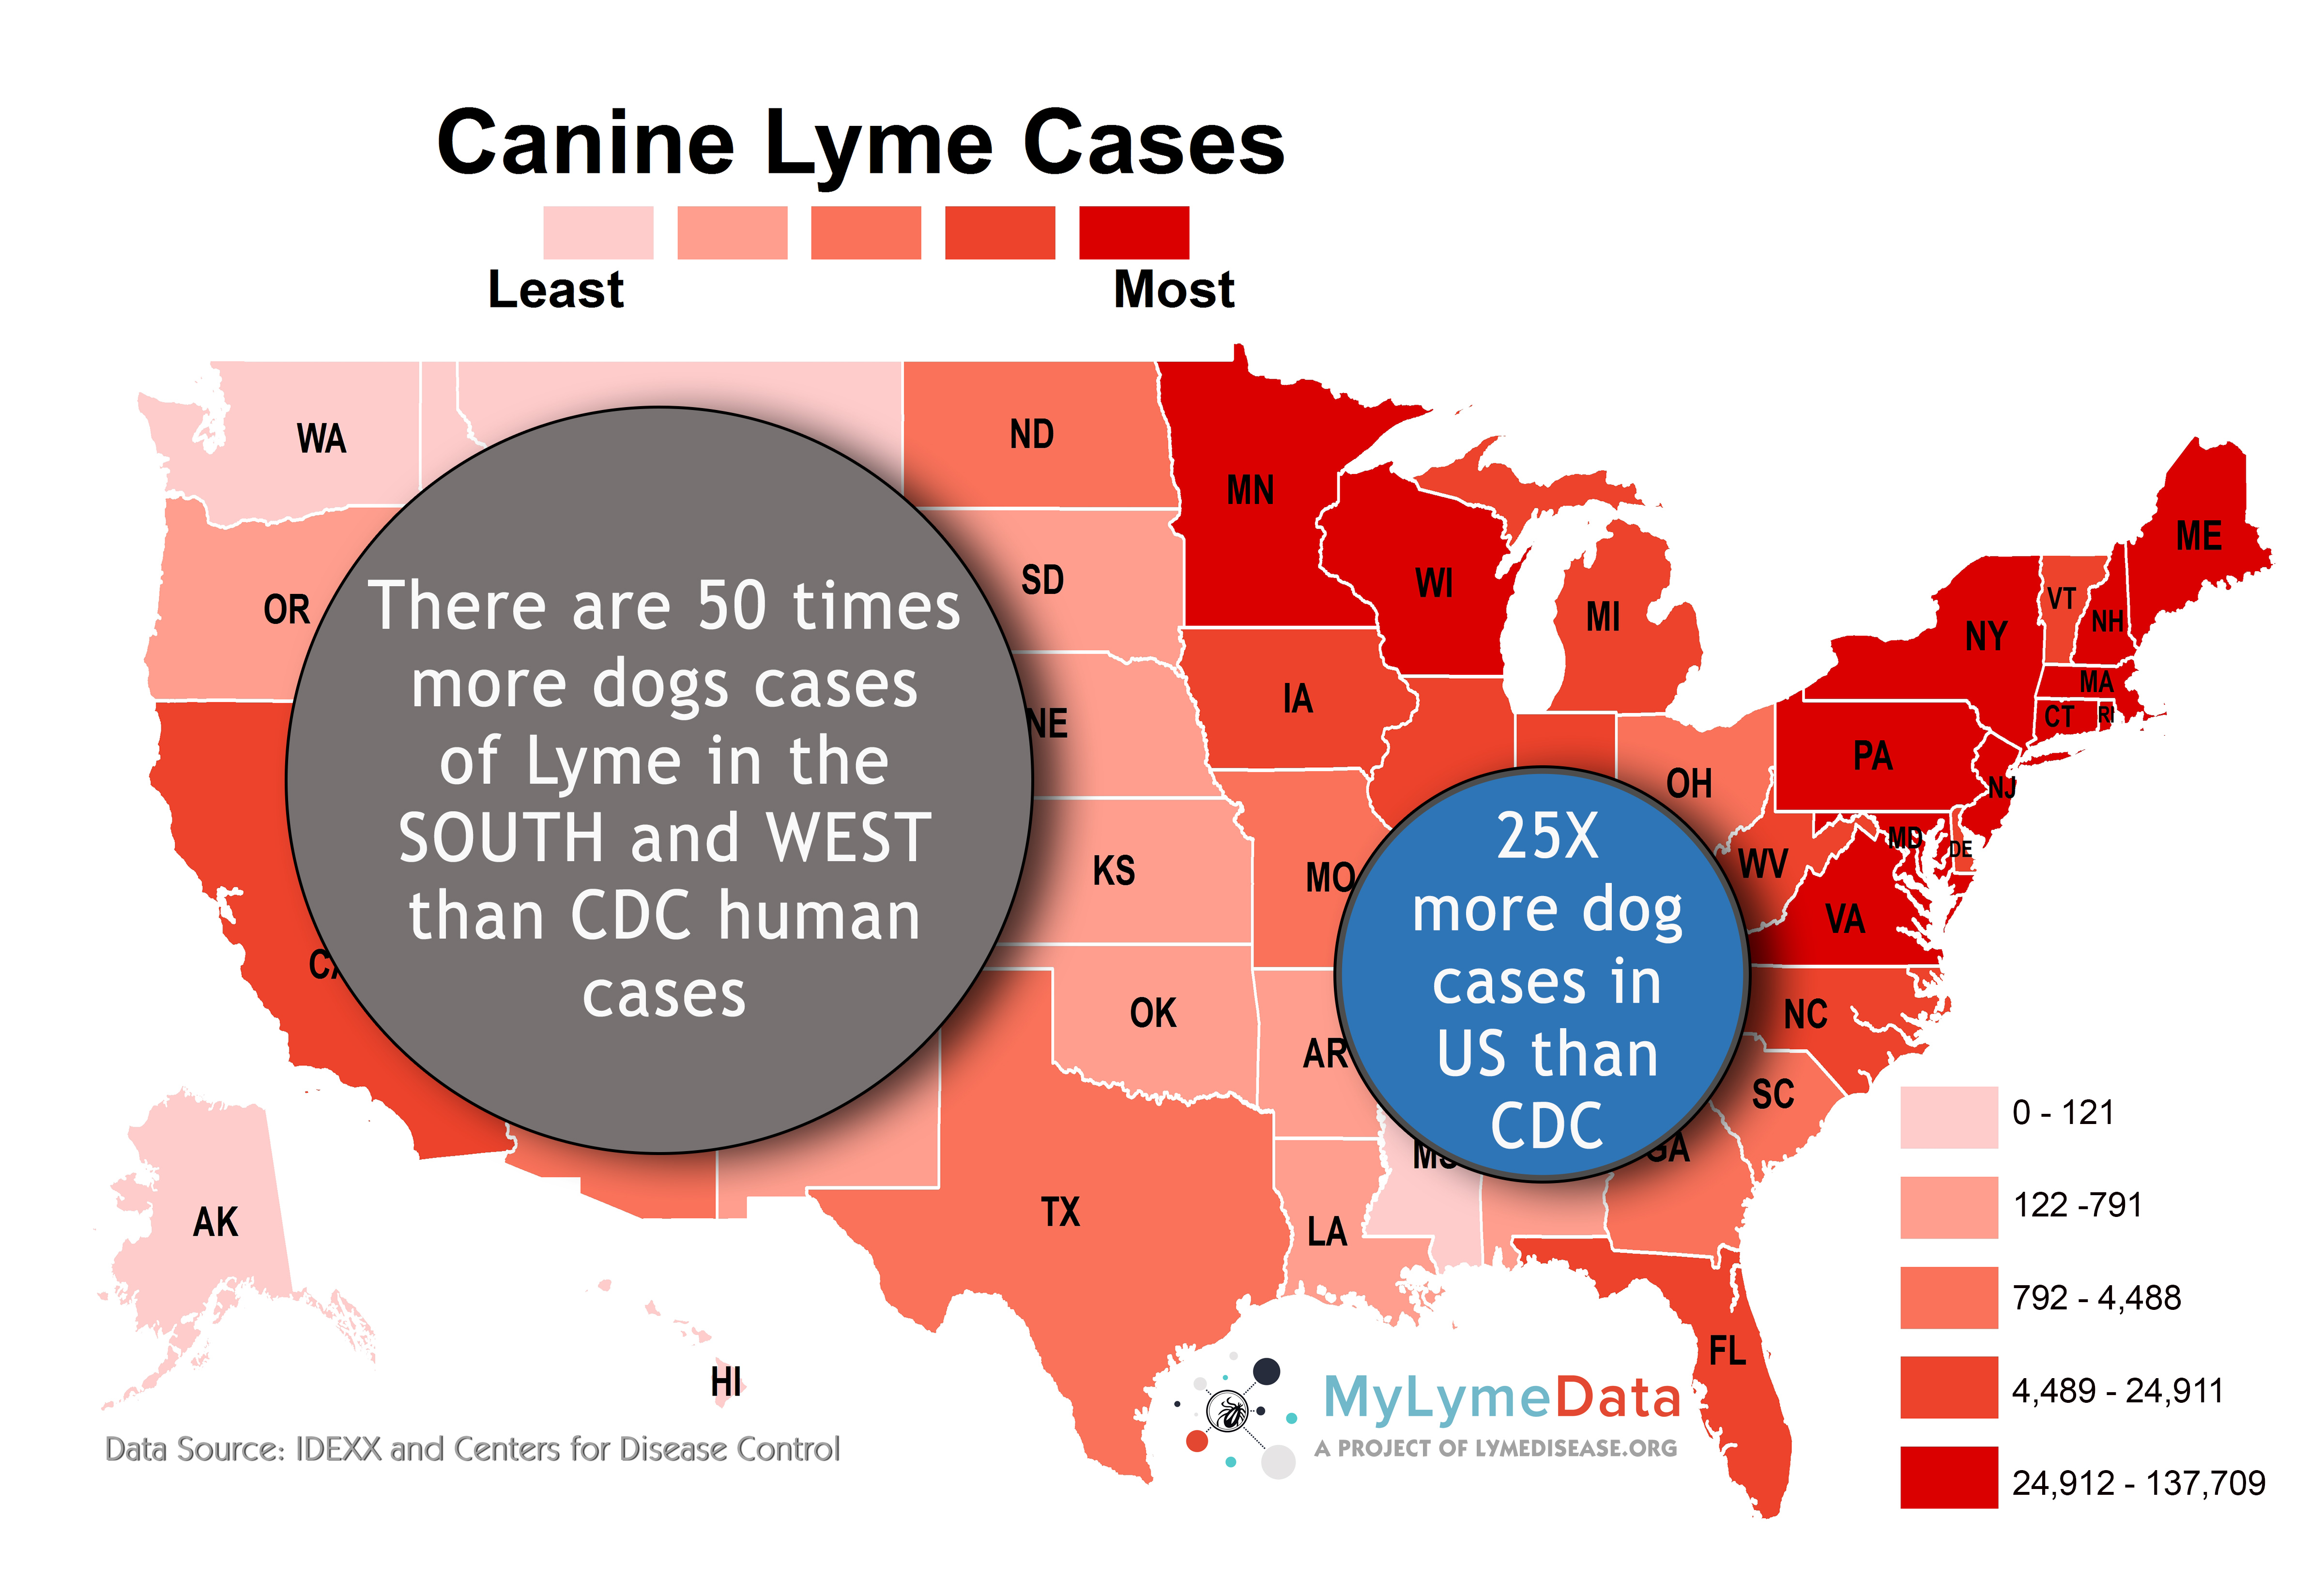 Canine Maps Predict Lyme Disease Risk Better Than CDC Does. on cdc water contamination map, cdc alcohol map, cdc lyme map, cdc interactive map, cdc smallpox map, cdc plague map, cdc ebola map, cdc cancer map, cdc cholera map, cdc epidemiology map, cdc chickenpox map, cdc suicide map, cdc death map, cdc pandemic map, cdc risk map, cdc sleep map, cdc anxiety map, cdc illness map, cdc measles map, cdc outbreak map,